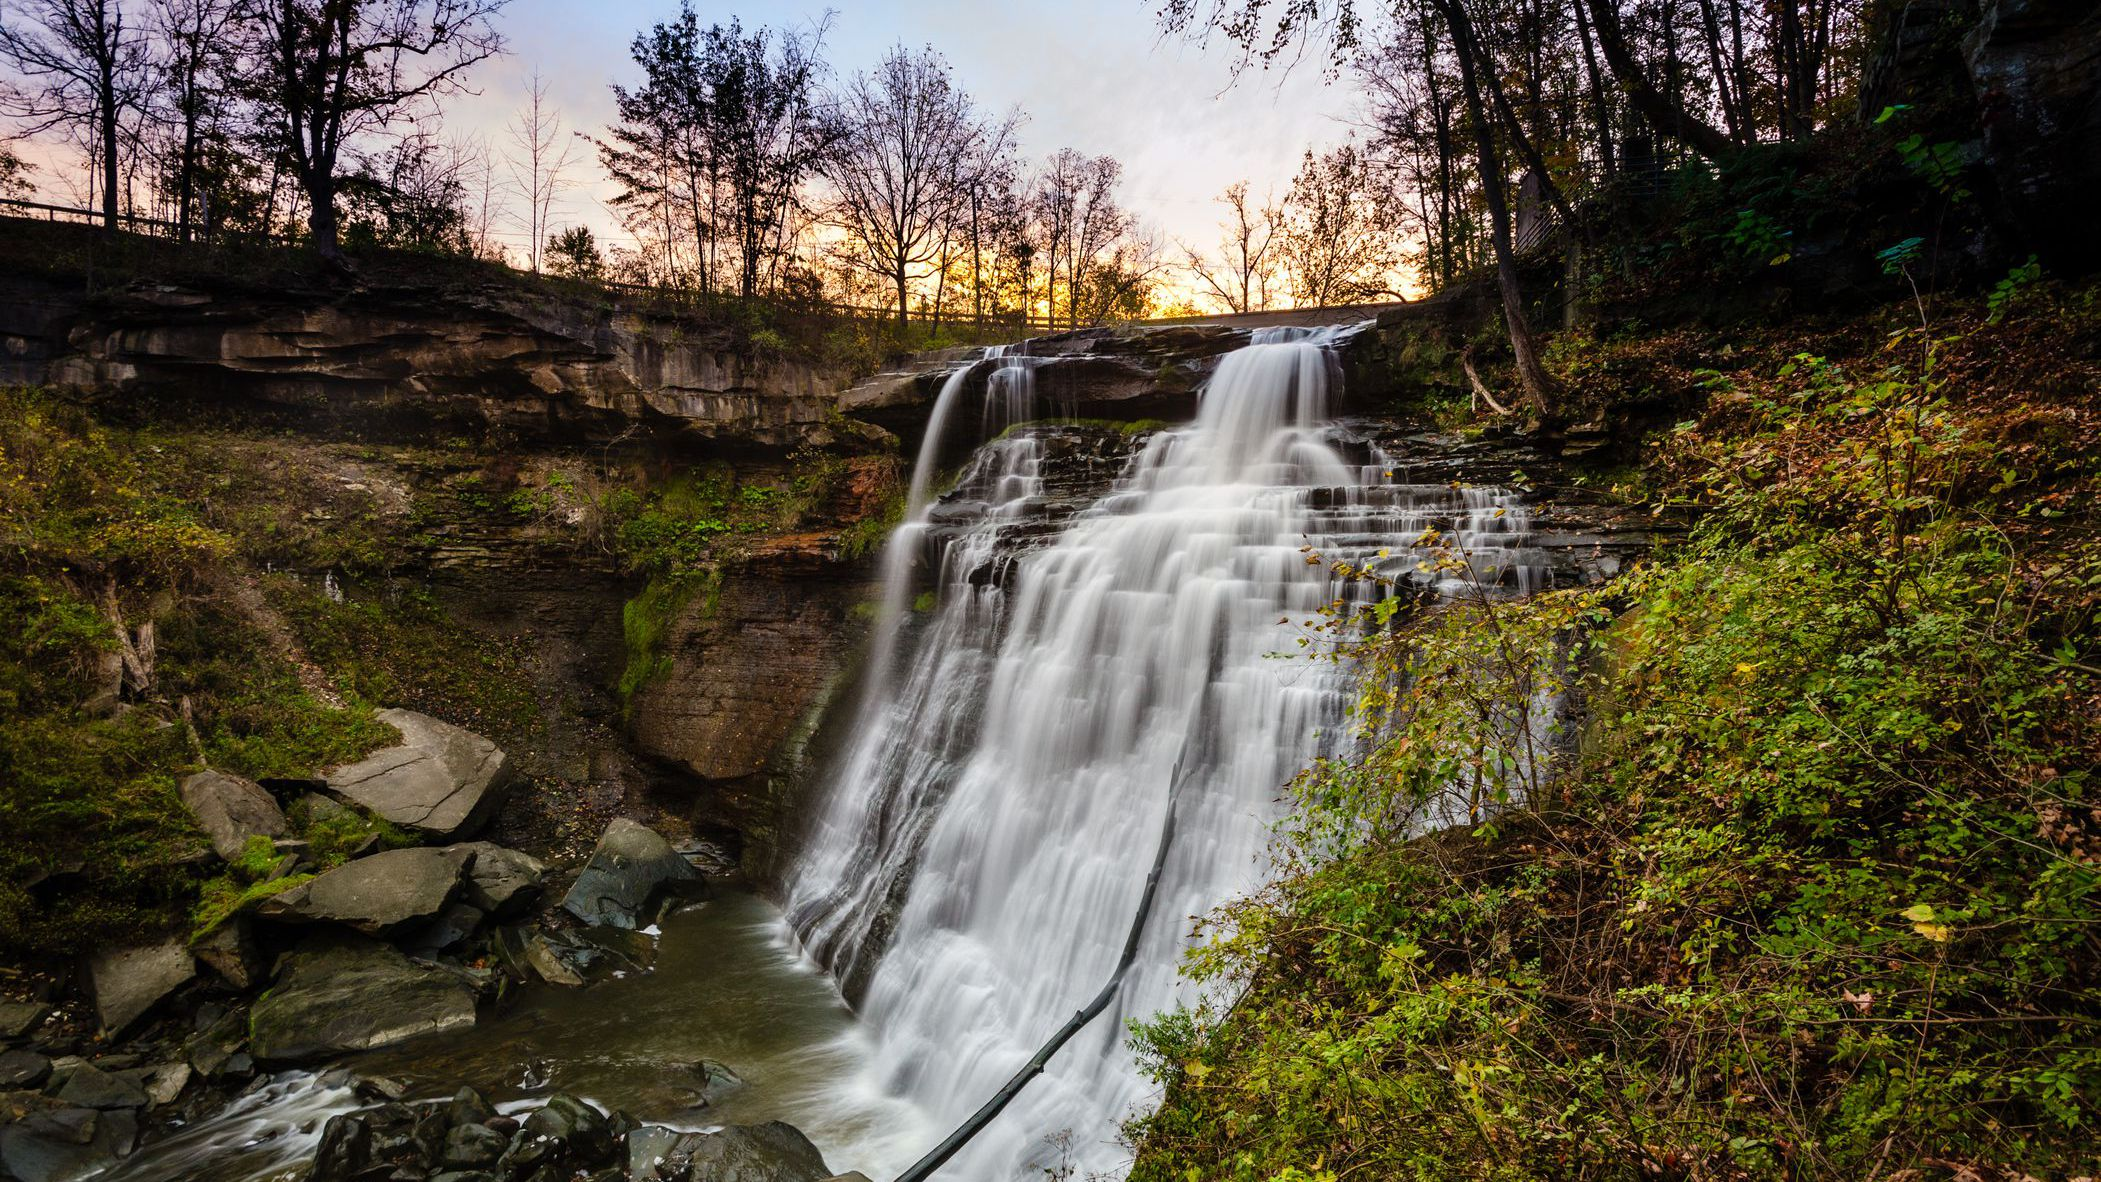 Bird Watching in the Cuyahoga Valley National Park